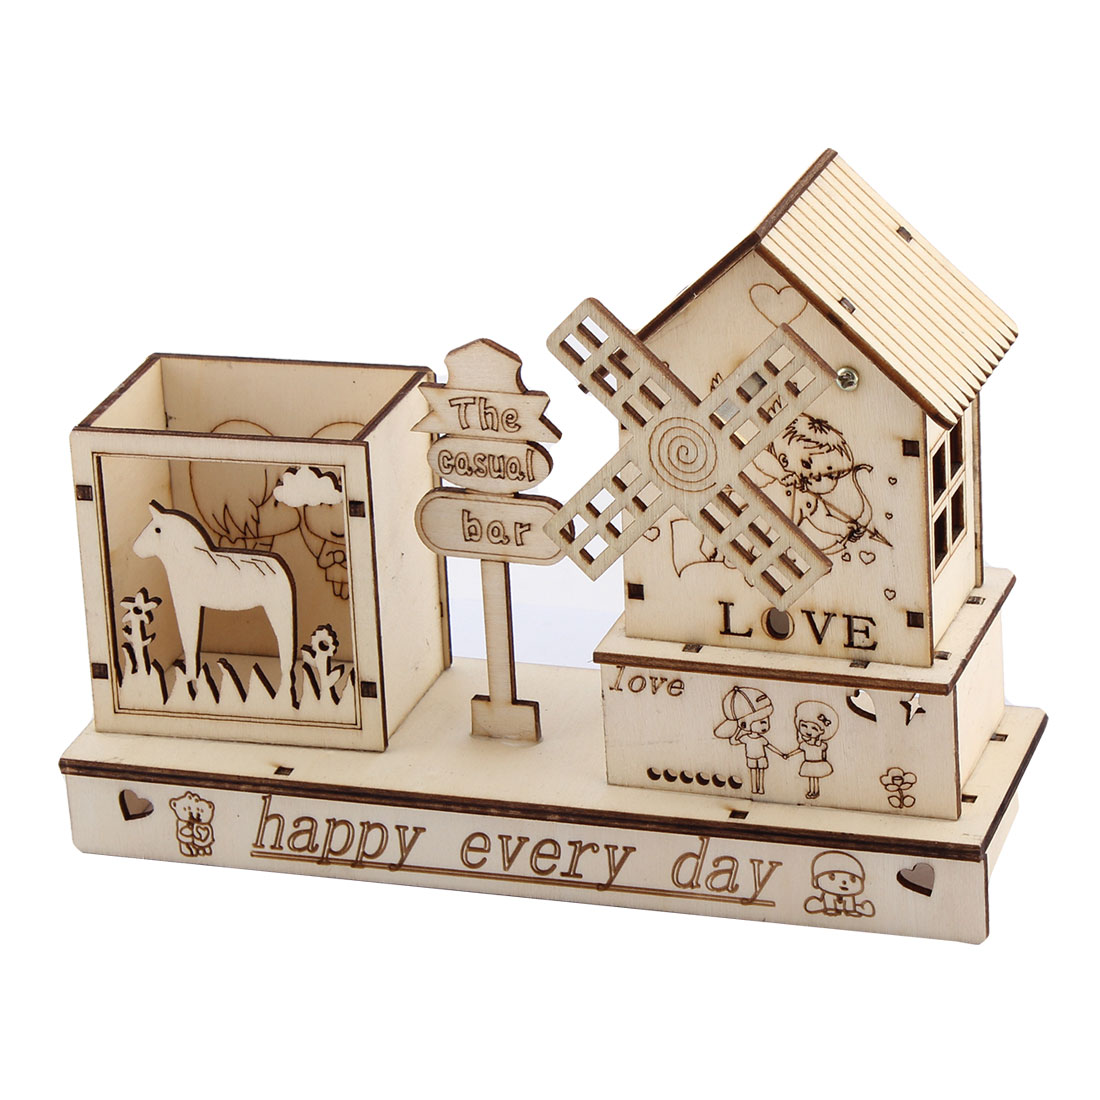 Desktop Wooden Pen Holder Clockwork Windmill Model Handmade Music Box Beige